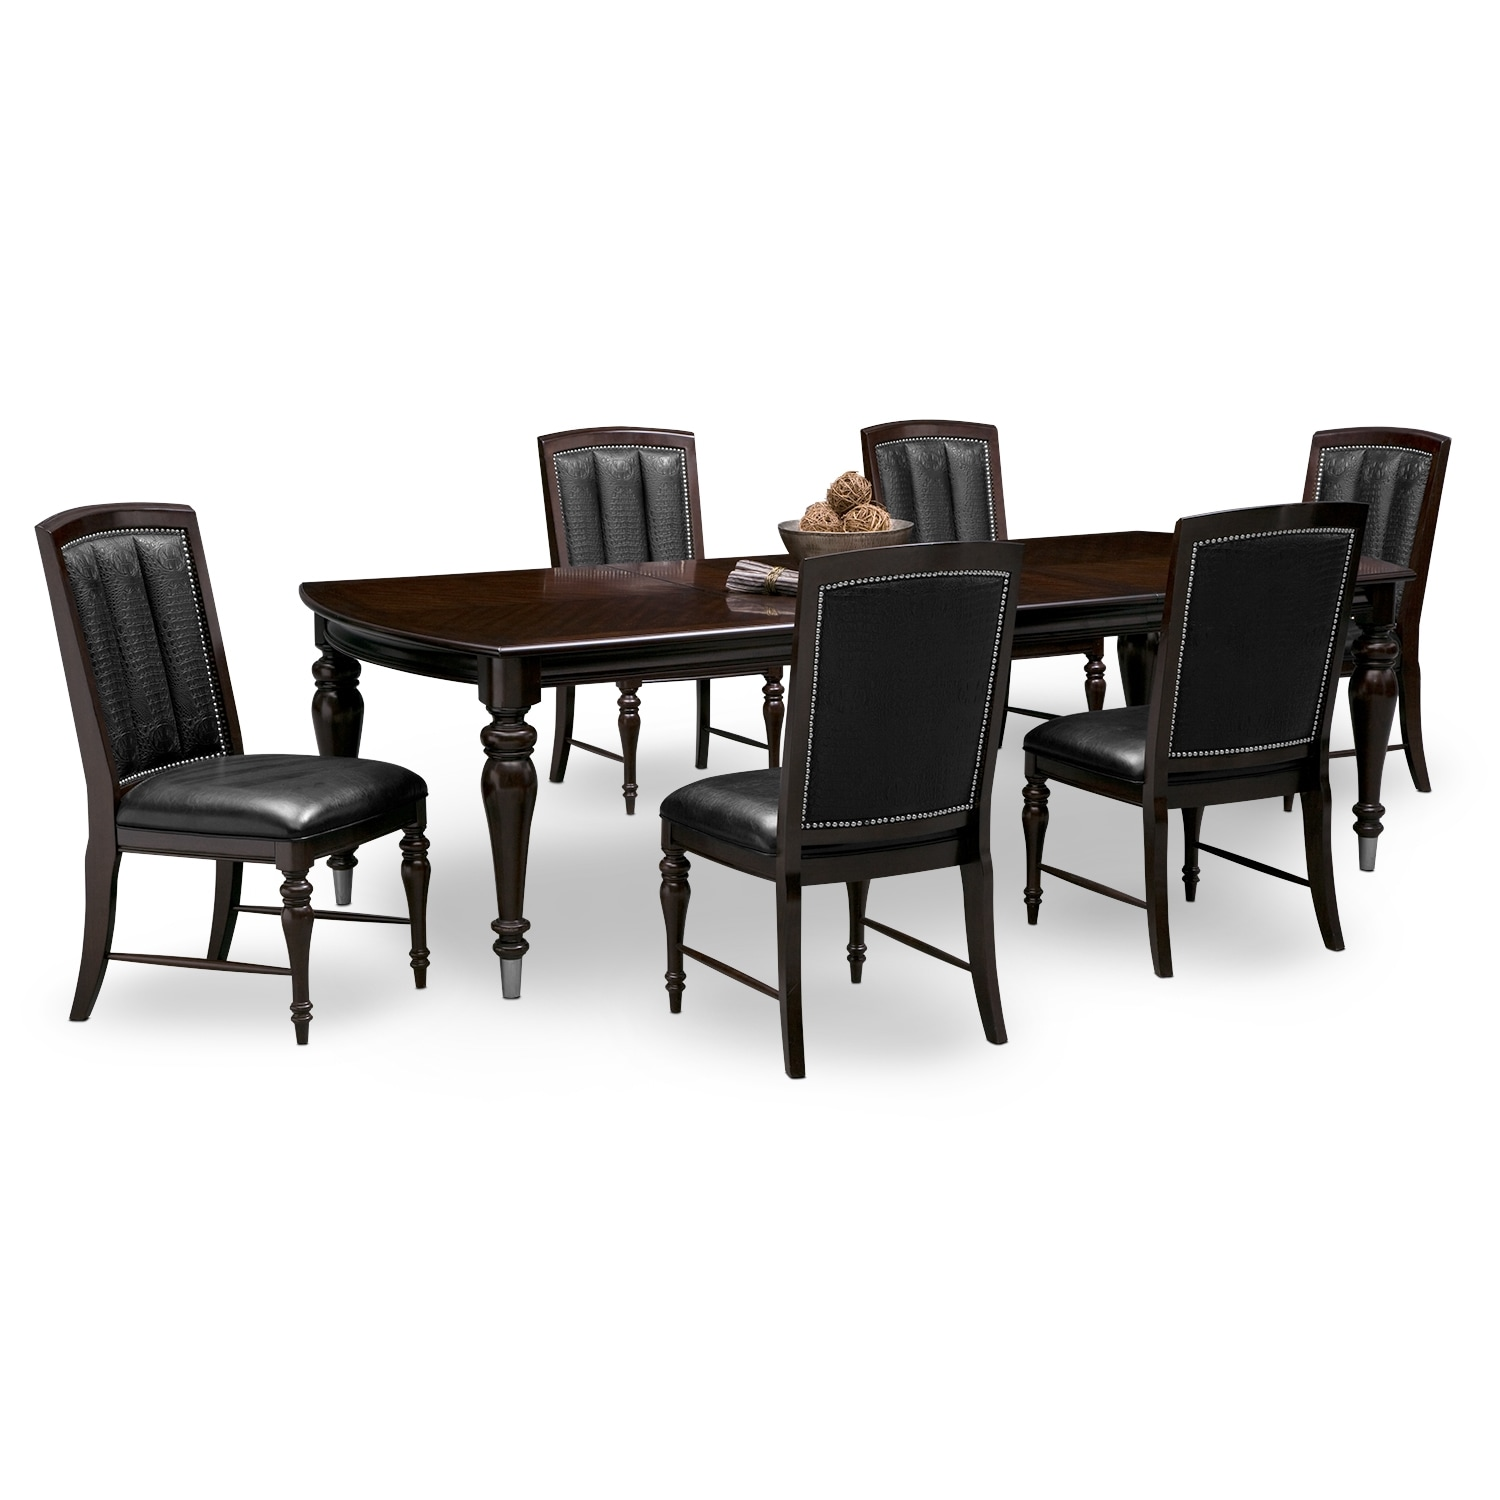 value city dining table and chairs glider chair ikea shop 7 piece room sets furniture